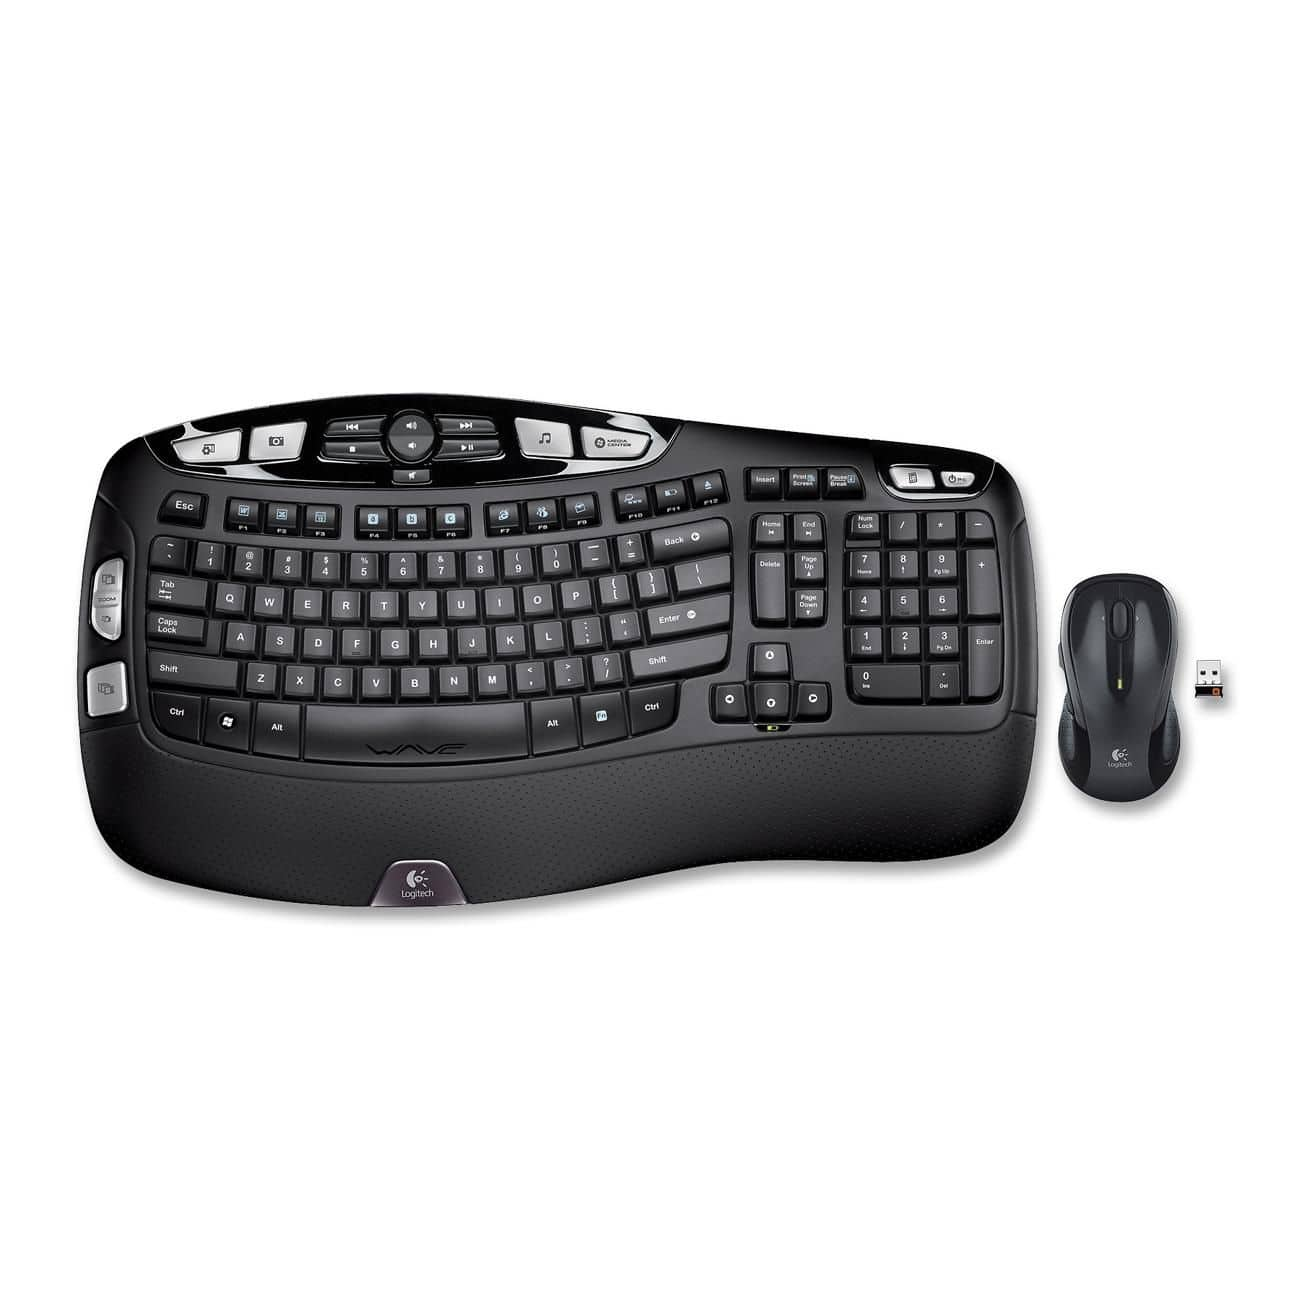 Logitech Mk550 Combo With Keyboard and Laser Mouse for $15 at Walmart B&M